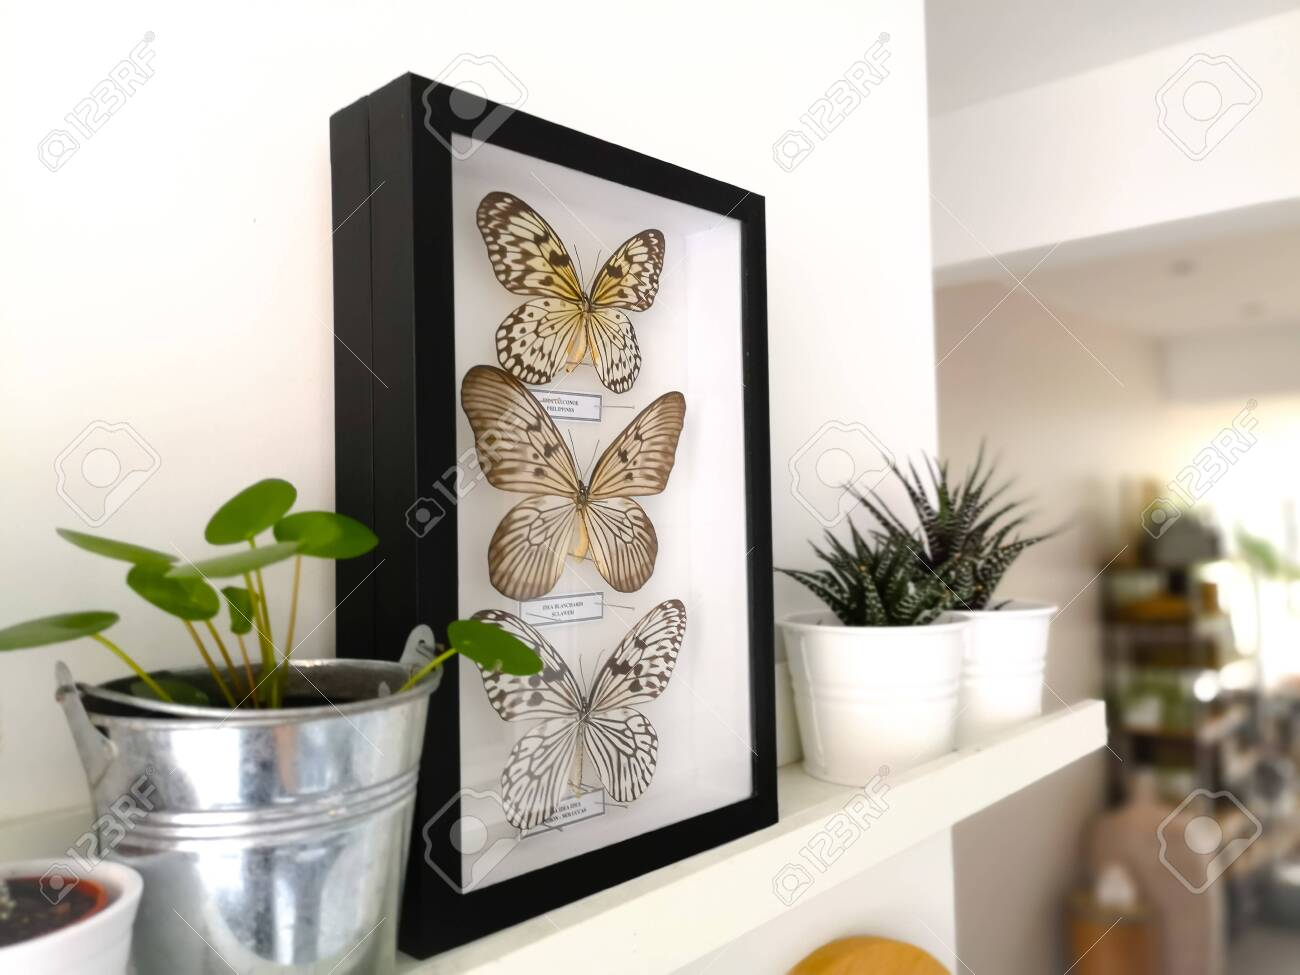 White floating shelf with framed taxidermy butterflies display and small houseplants in a black and white interior - 127147141